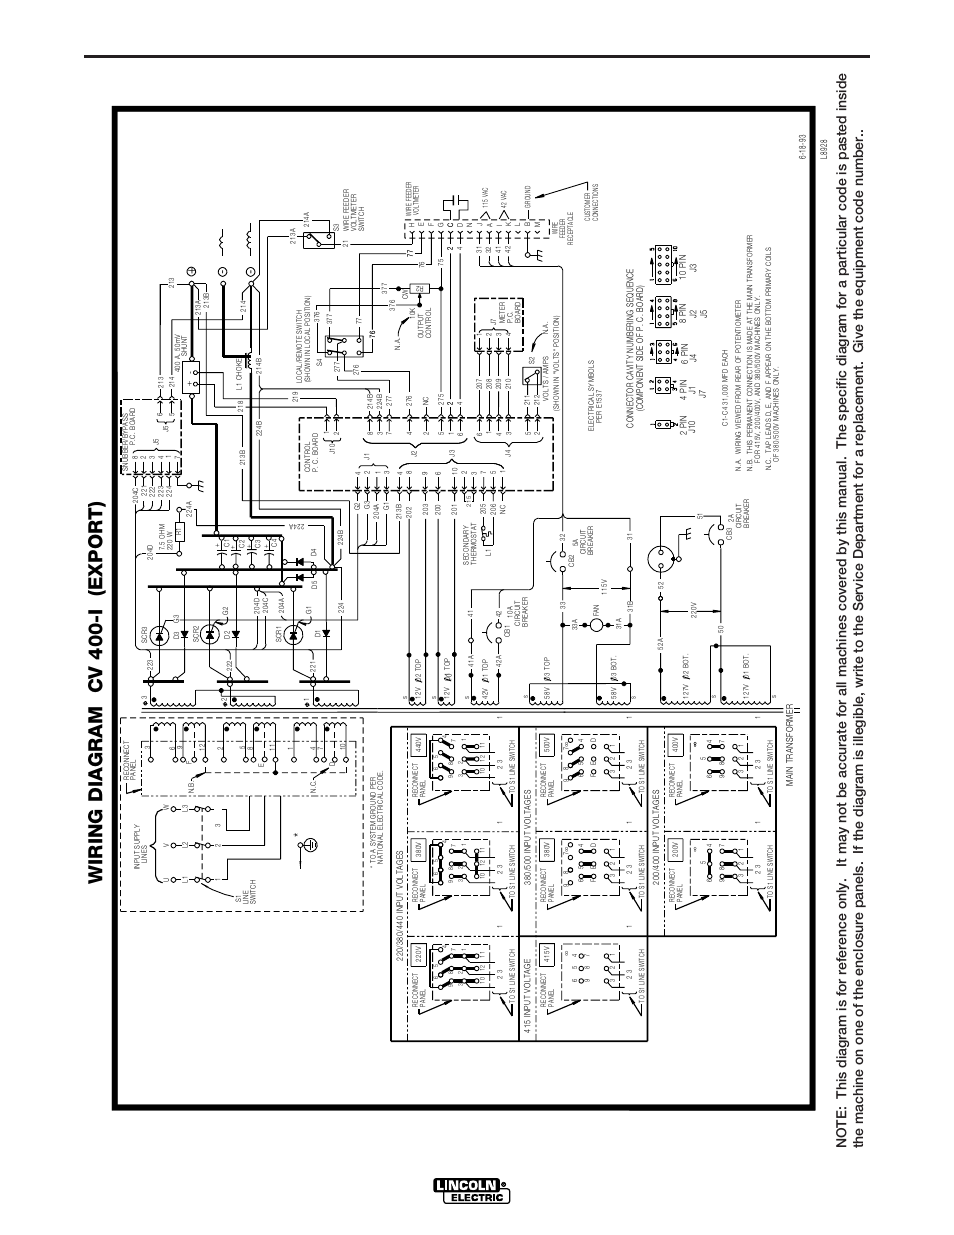 diagrams cv 400 i wiring diagram cv 400 i export lincoln rh manualsdir com